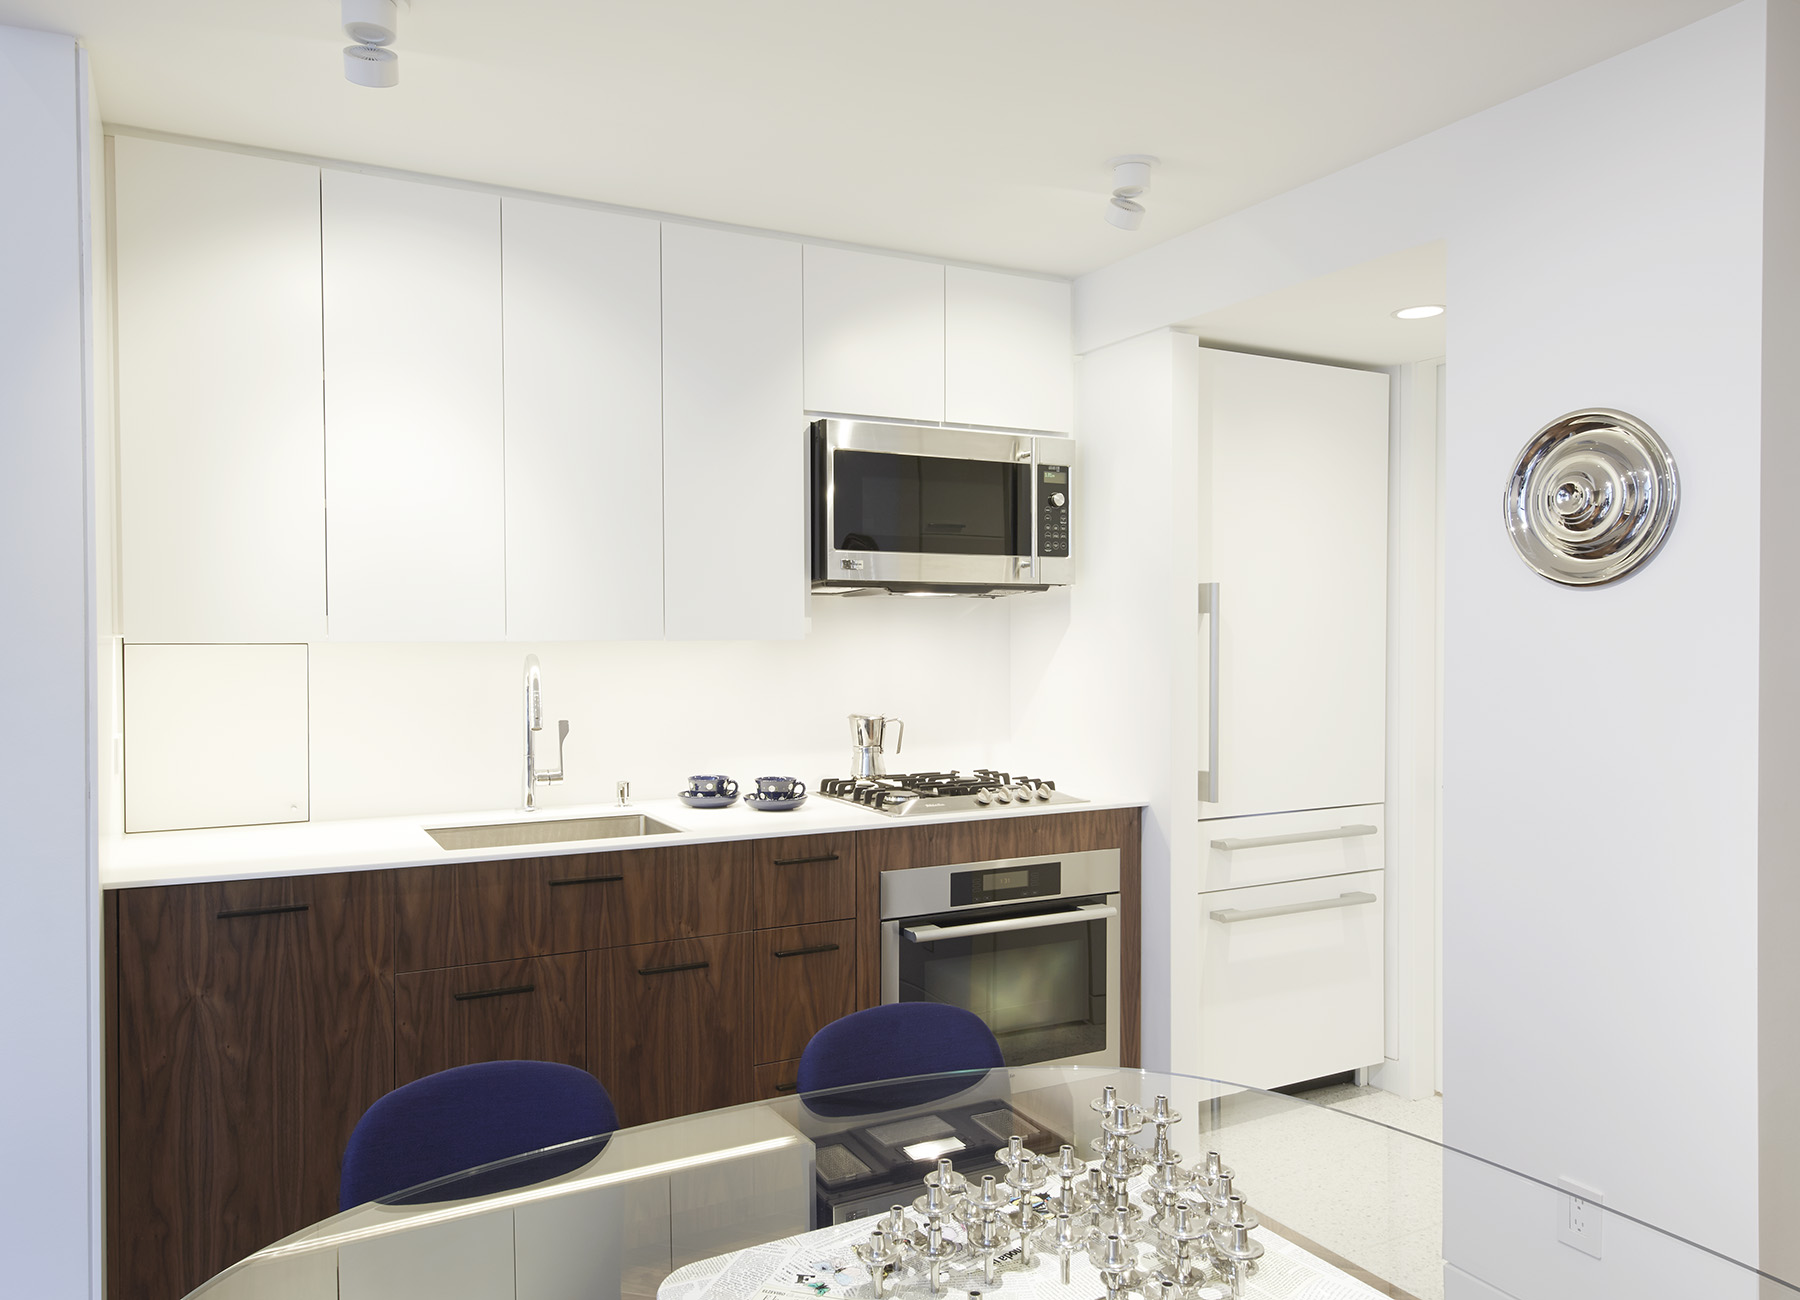 STADT Architecture, Gramercy Apartment, Walnut Cabinets, Miele, GE Monogram, Axor, STADT, nyc architects, ny apartment renovation